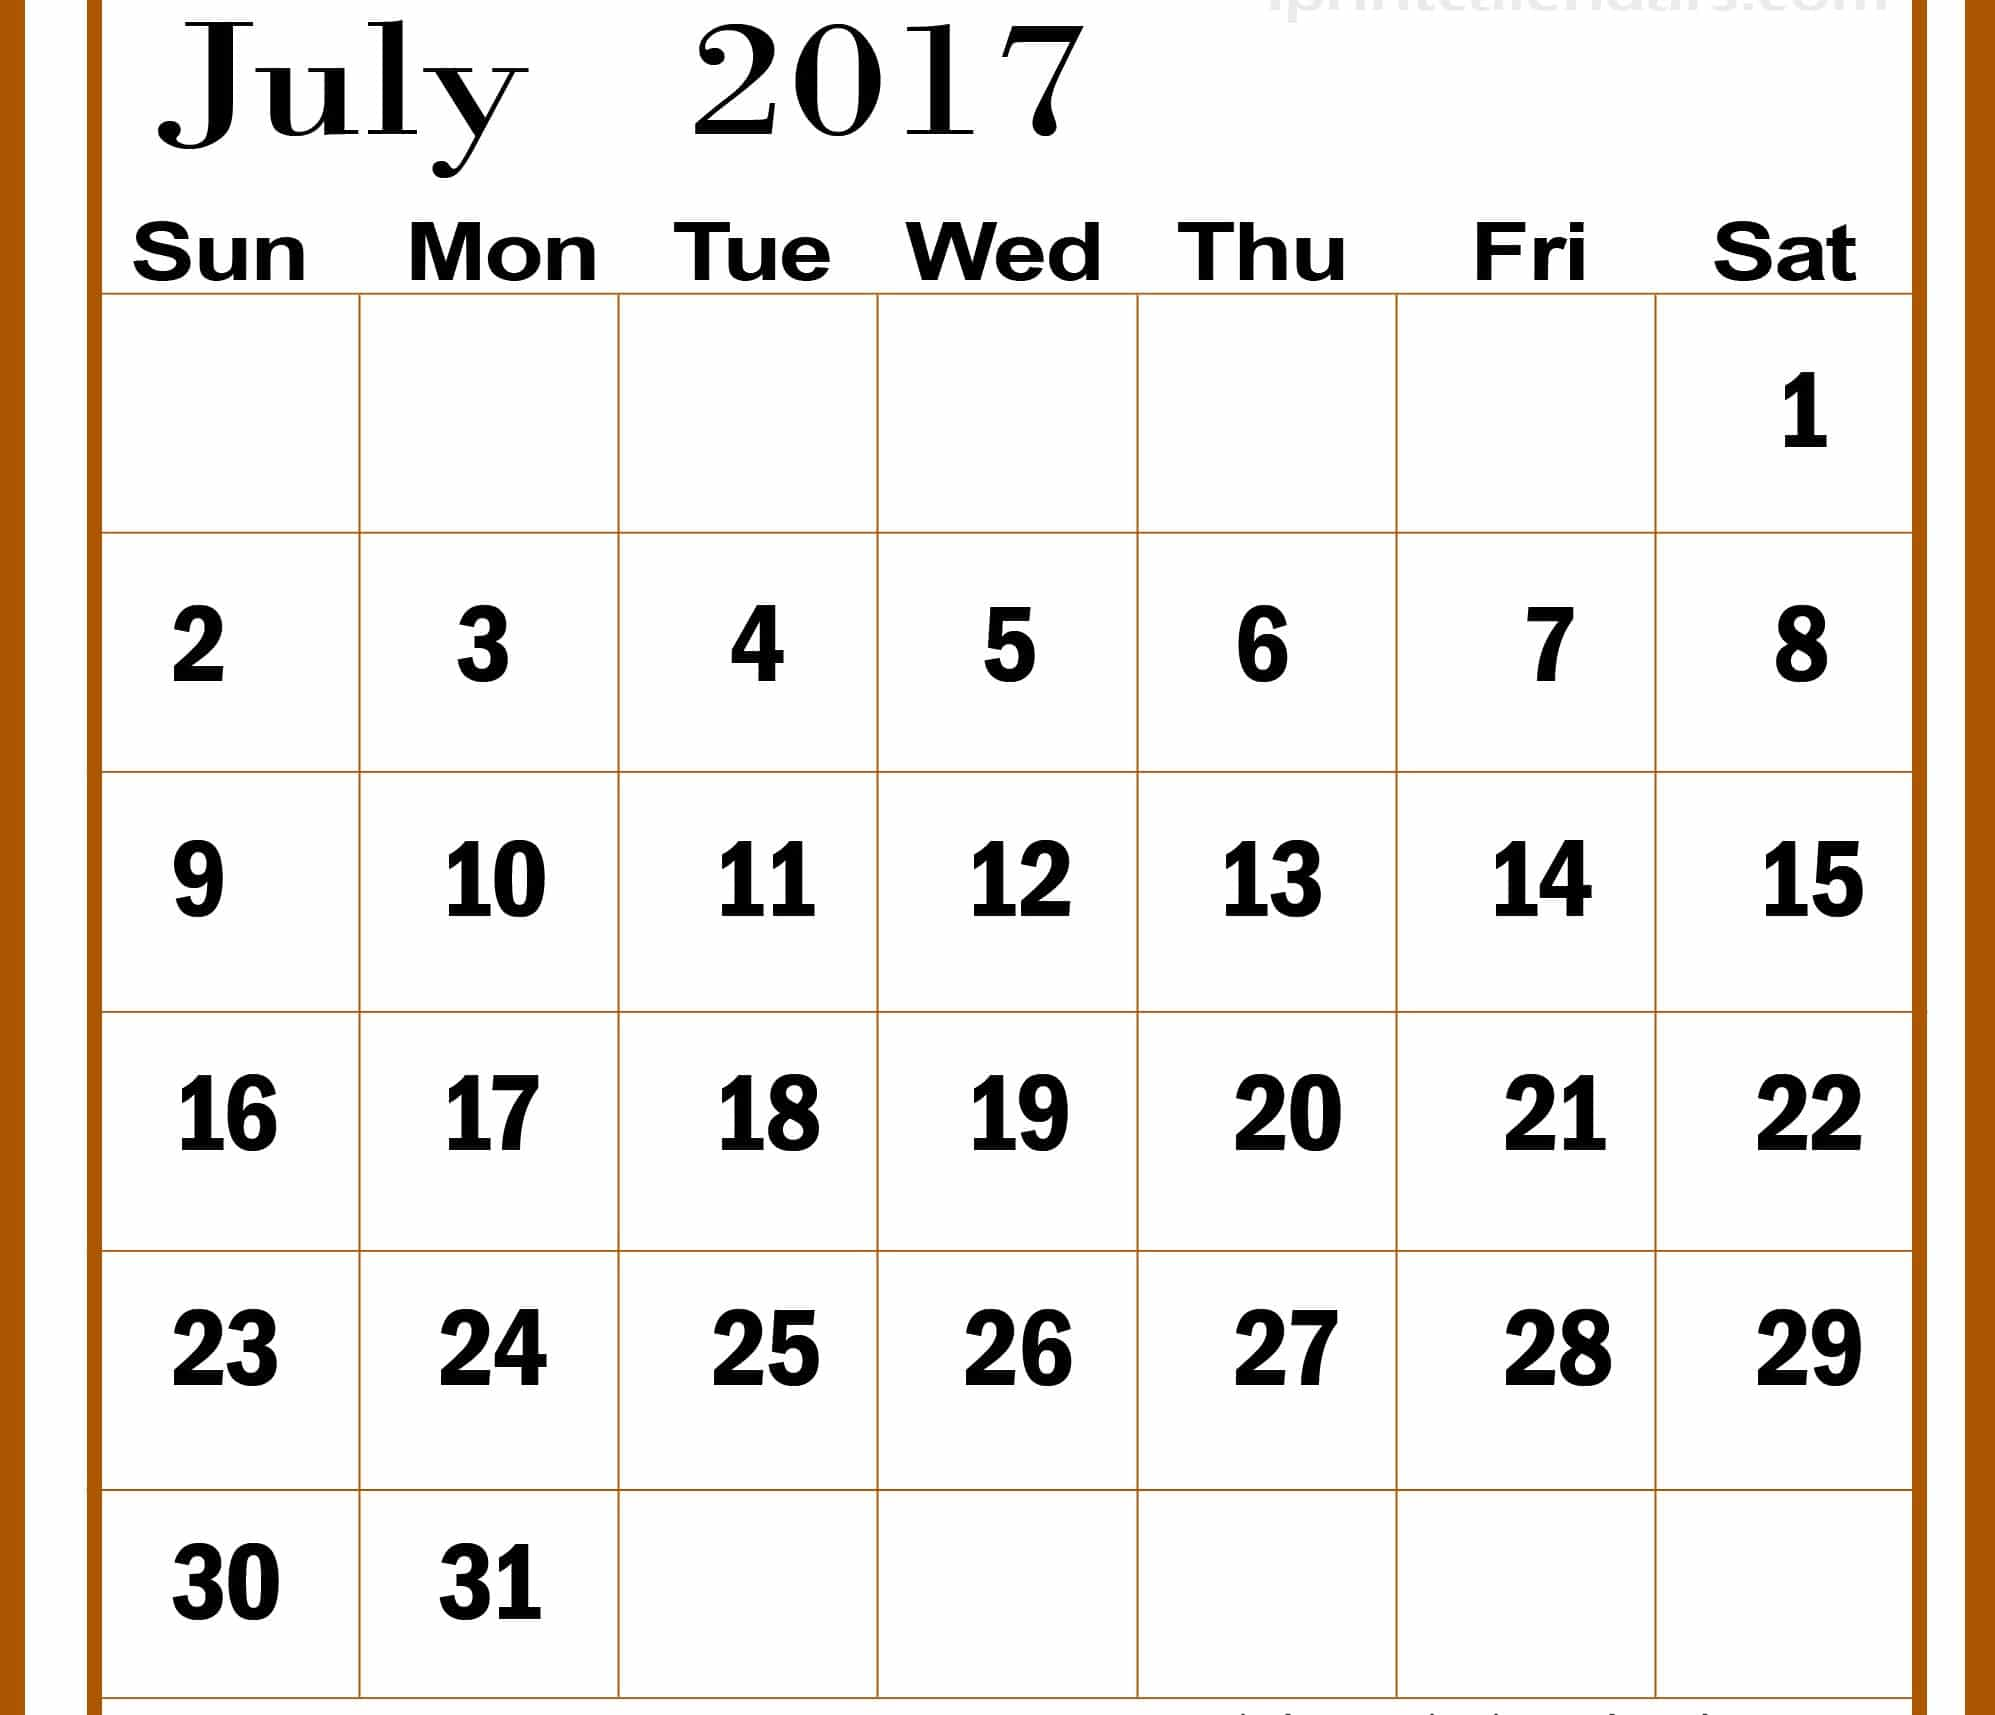 July 2017 Calendar Images